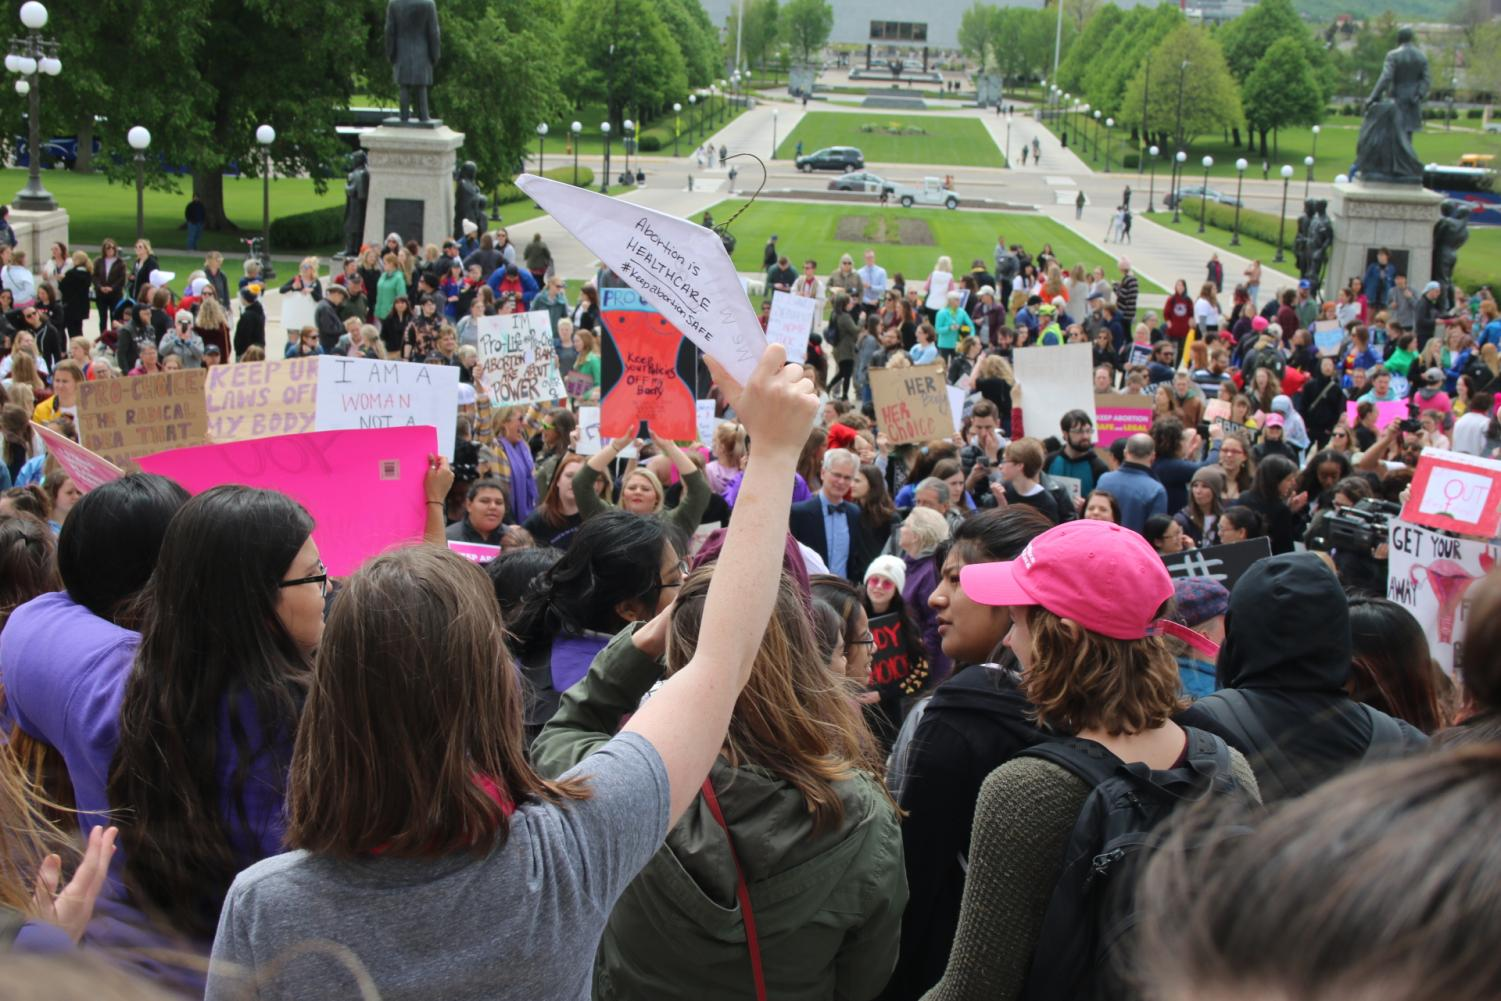 People+protest+proposed+abortion+bans+at+the+Minnesota+state+capitol+on+Tuesday%2C+May+21.